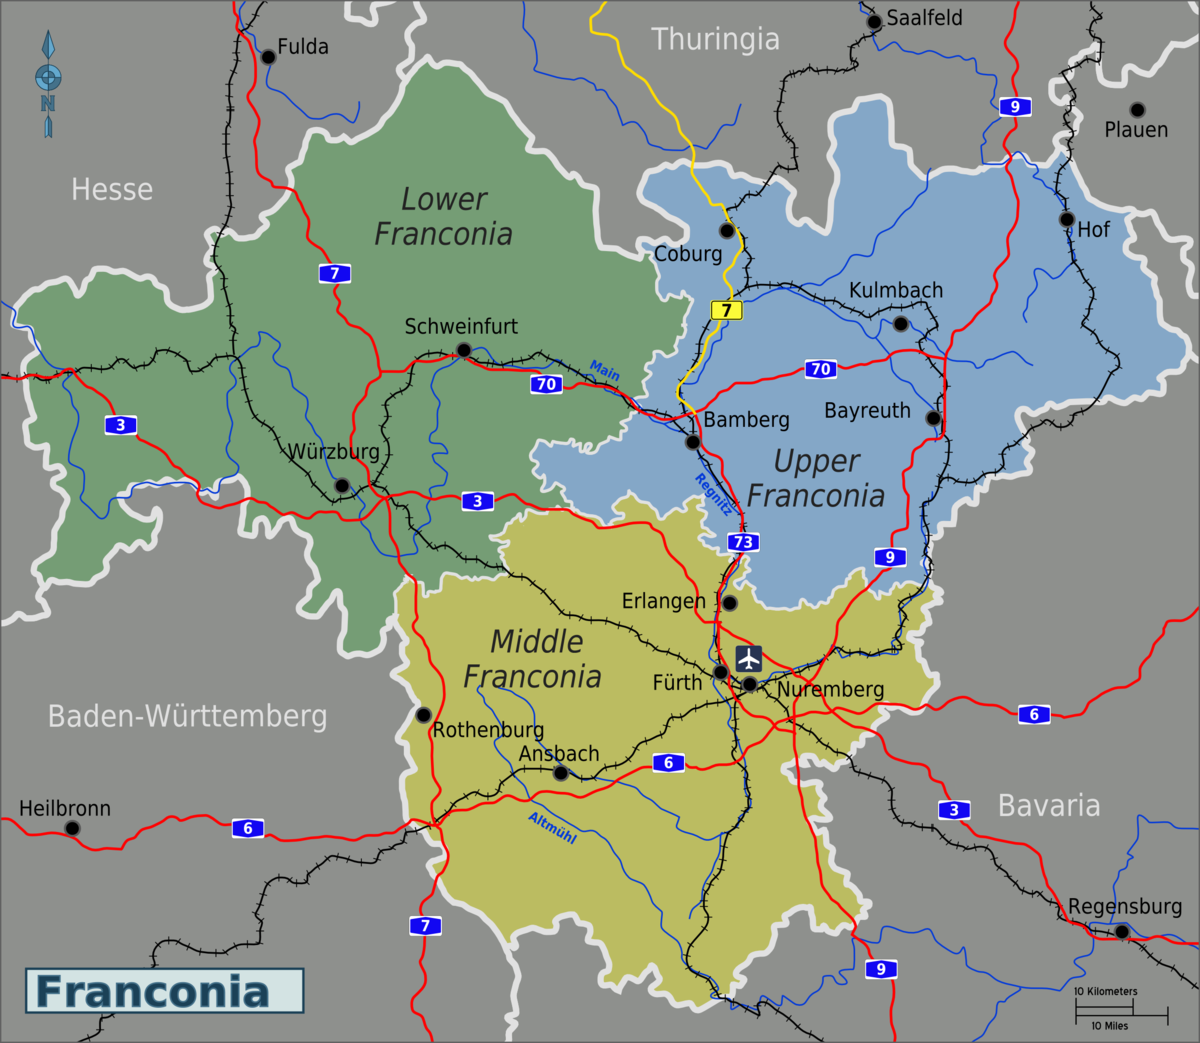 Franconia Travel guide at Wikivoyage